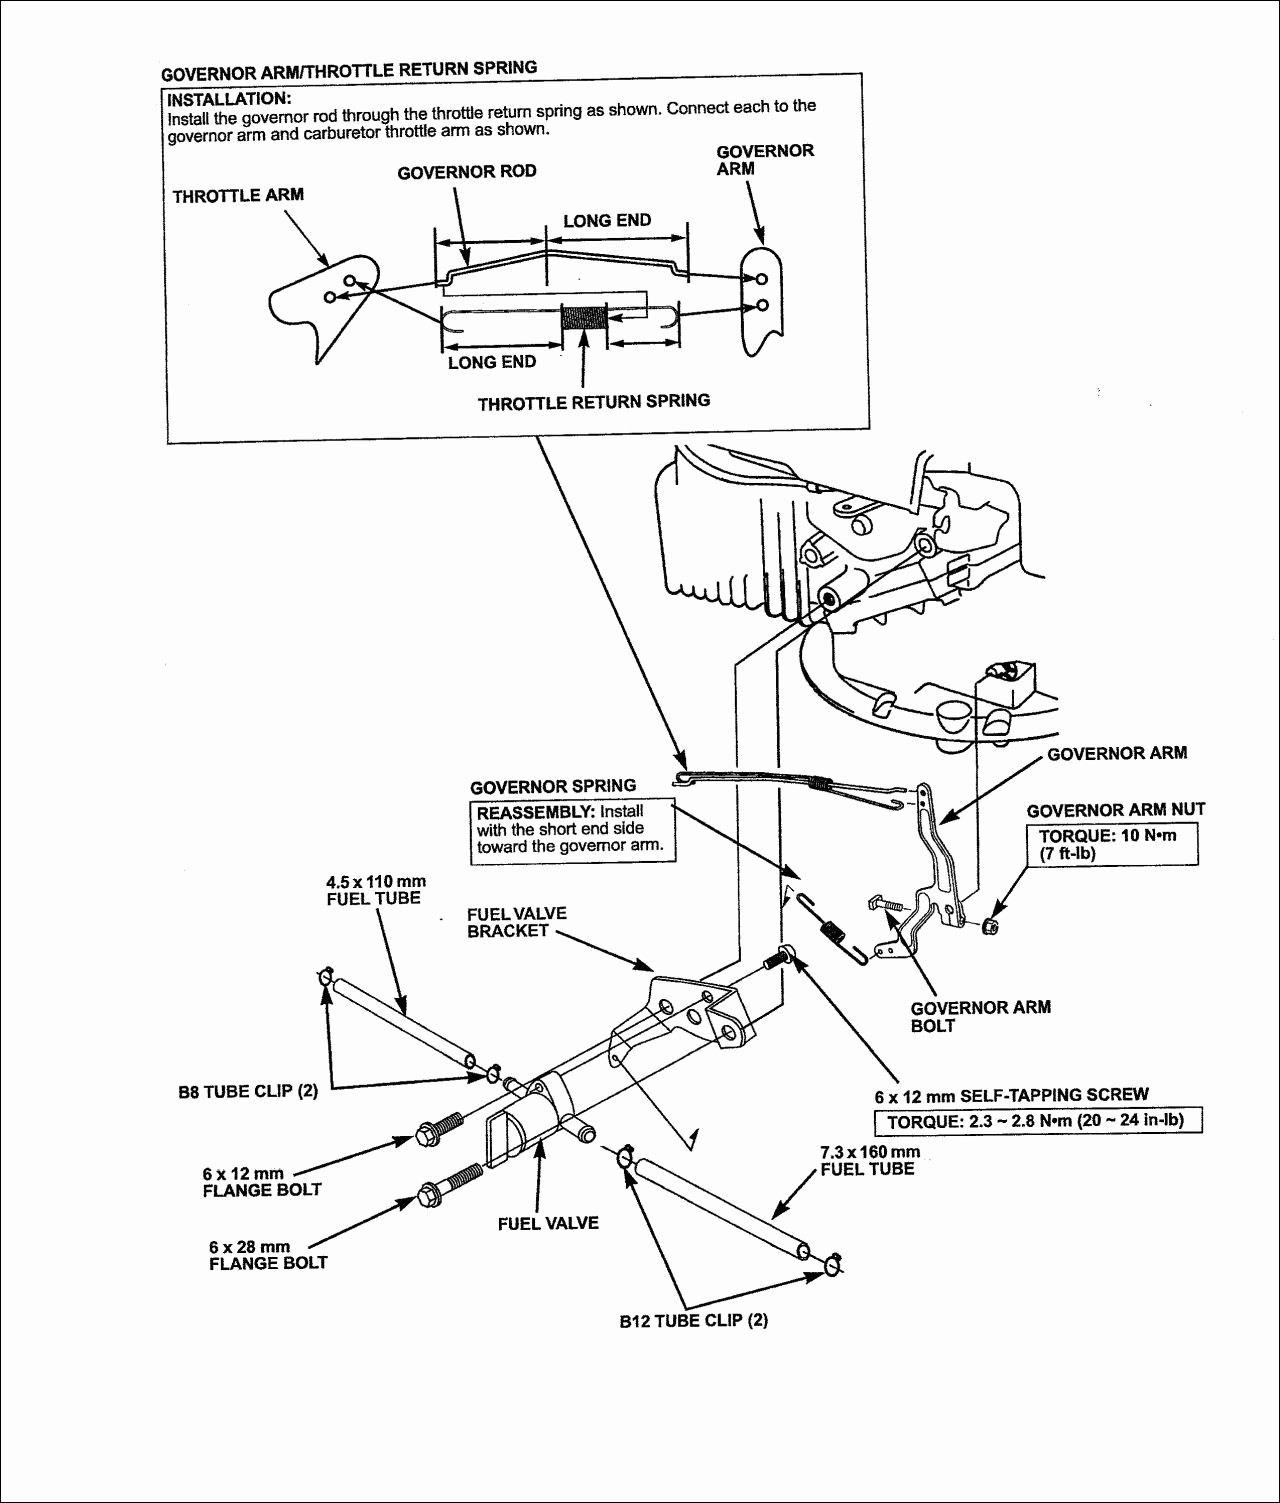 Honda Small Engine Carburetor Diagram 2008 Honda Civic Engine Diagram Oil Honda Wiring Diagrams Instructions Of Honda Small Engine Carburetor Diagram Craftsman Riding Mower Electrical Diagram